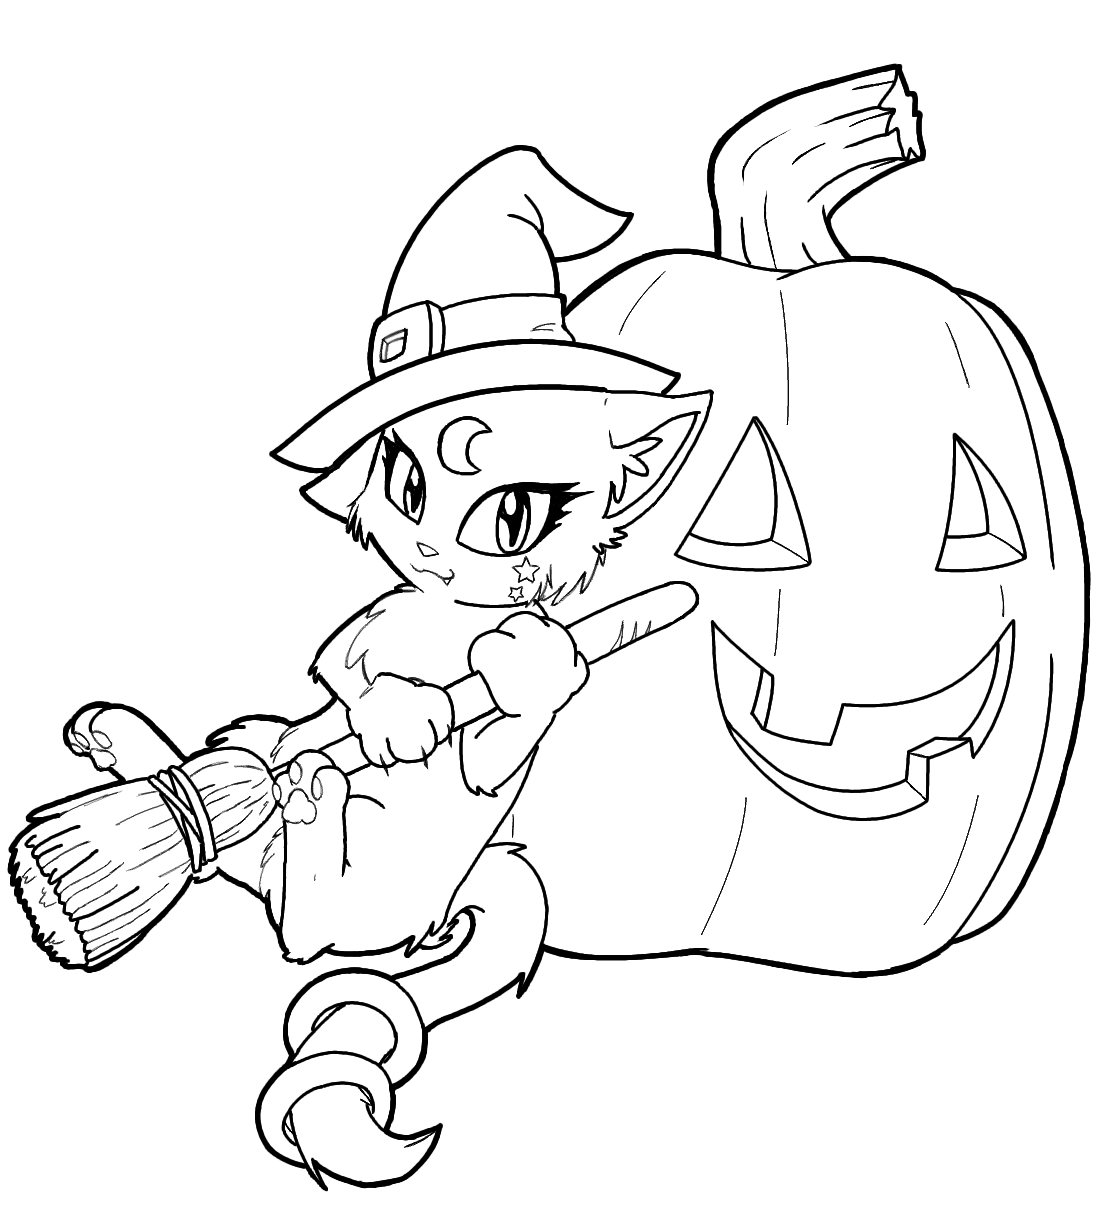 coloring printable witch imageslistcom halloween witches for coloring part 1 printable witch coloring